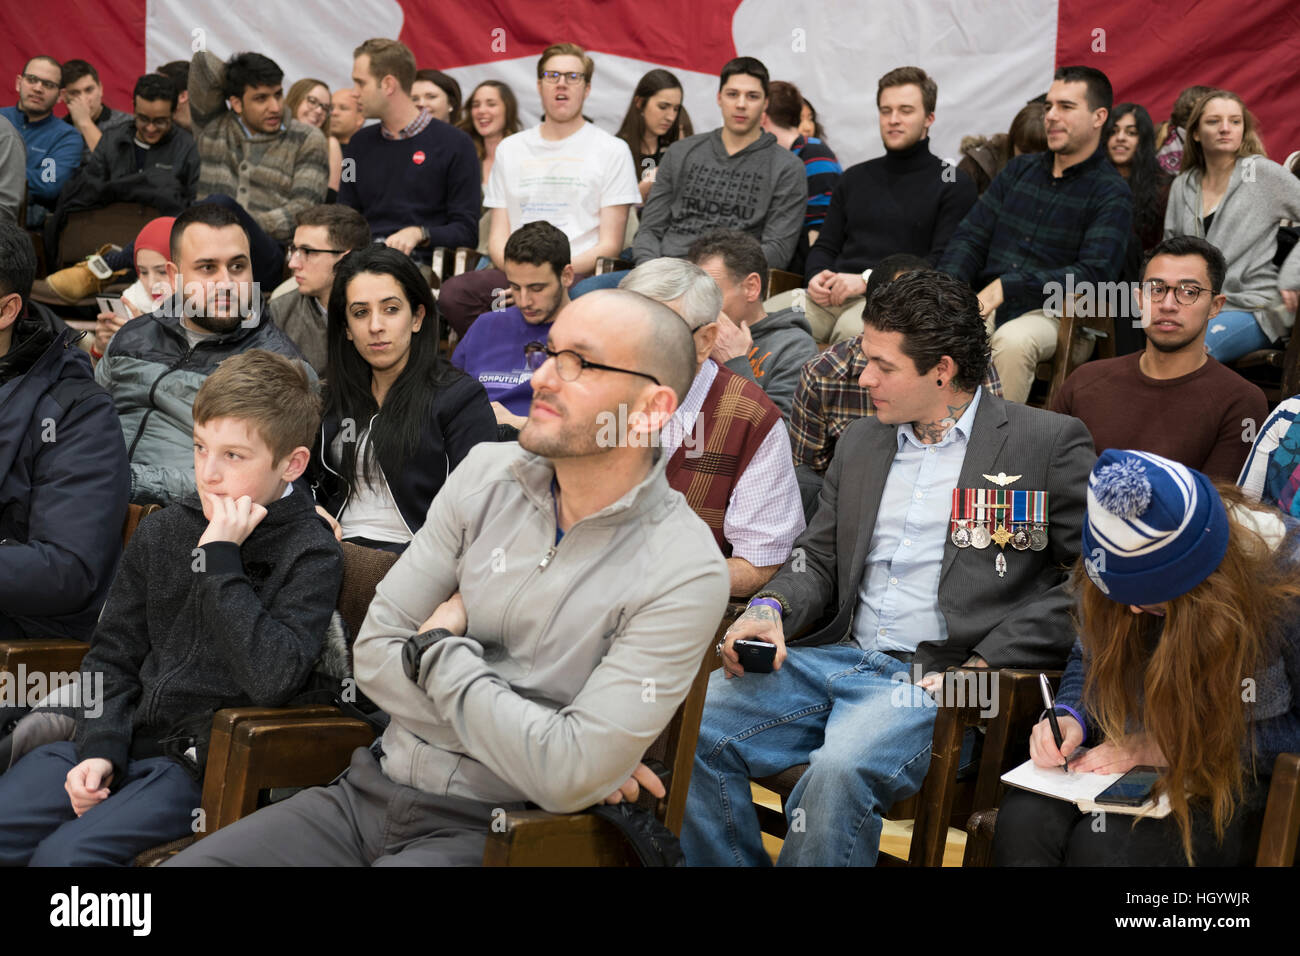 london-ontario-canada-13th-january-2017-members-of-the-audience-wait-HGYWJR.jpg